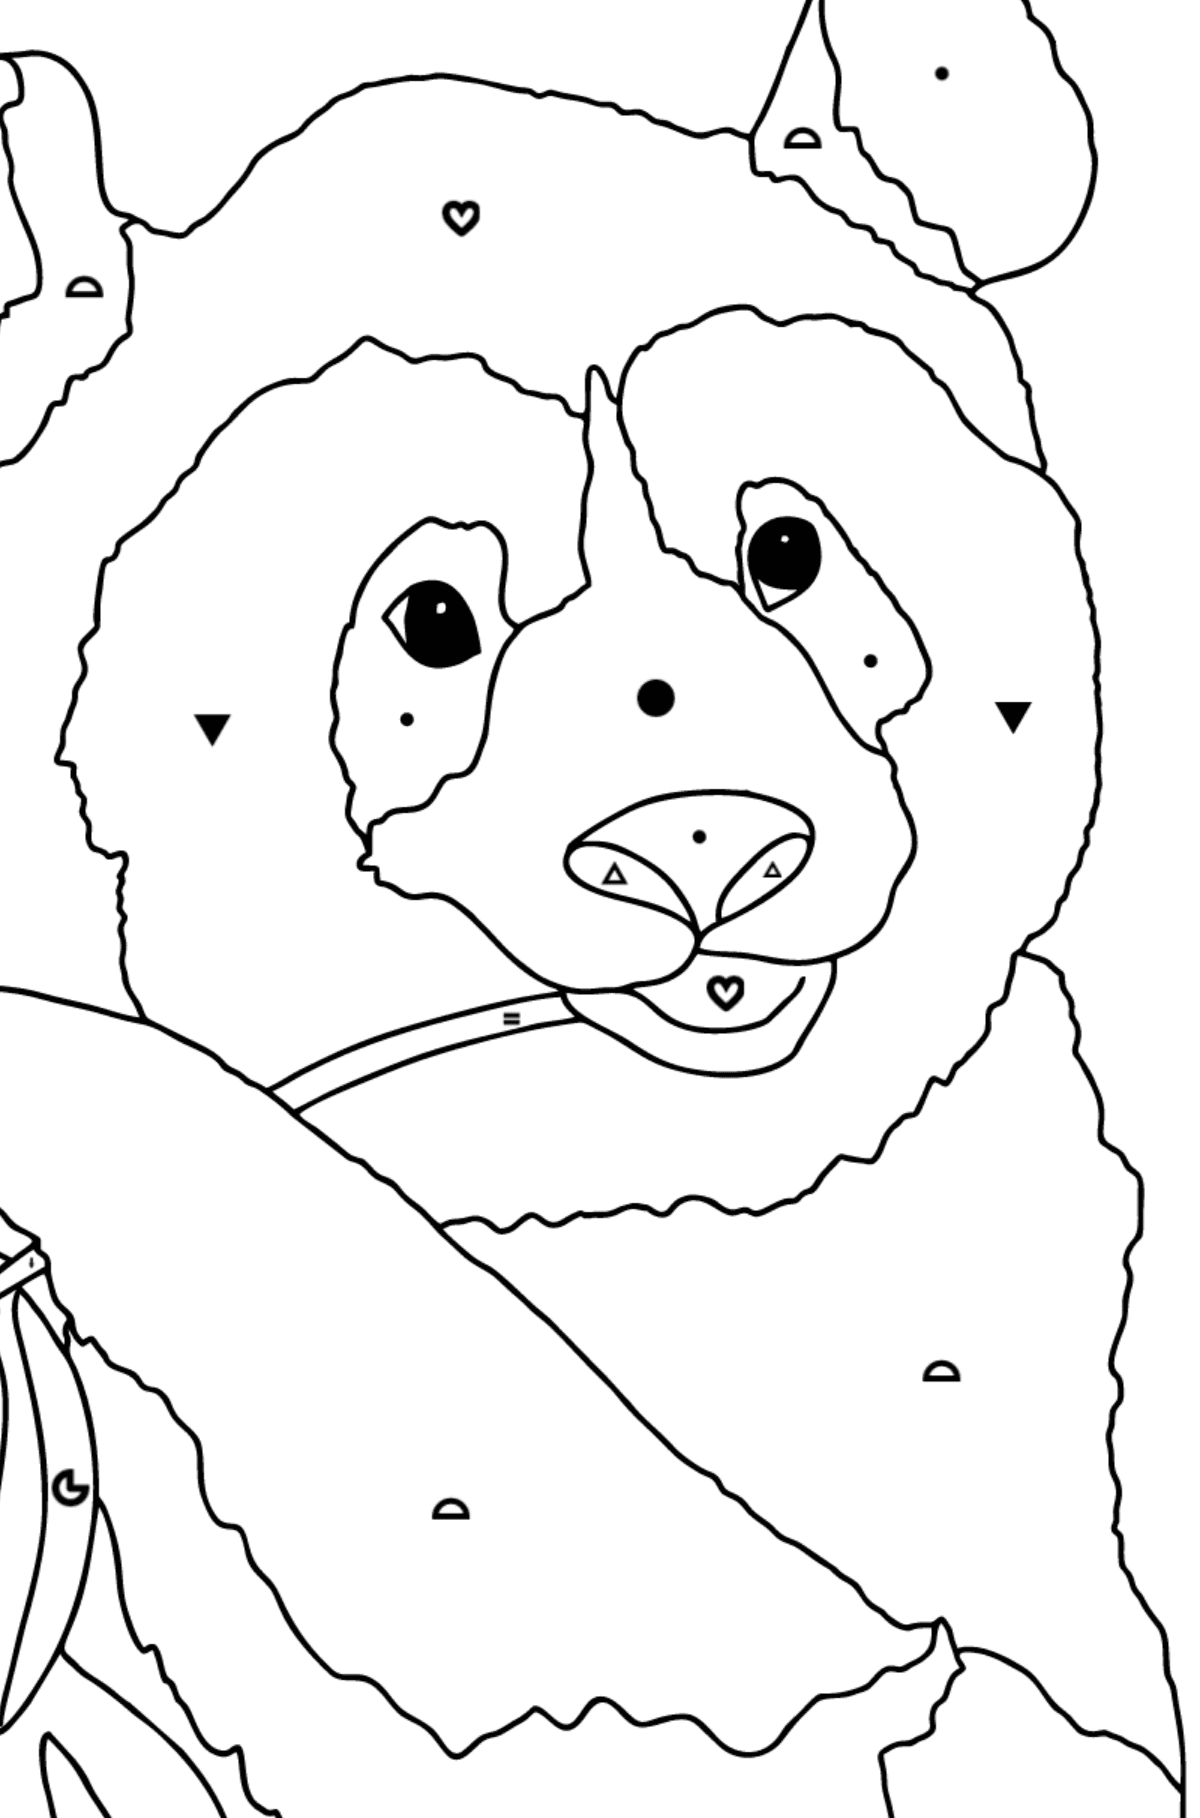 Coloring Page - A Panda is Eating Bamboo Stems and Leaves - Coloring by Symbols and Geometric Shapes for Children